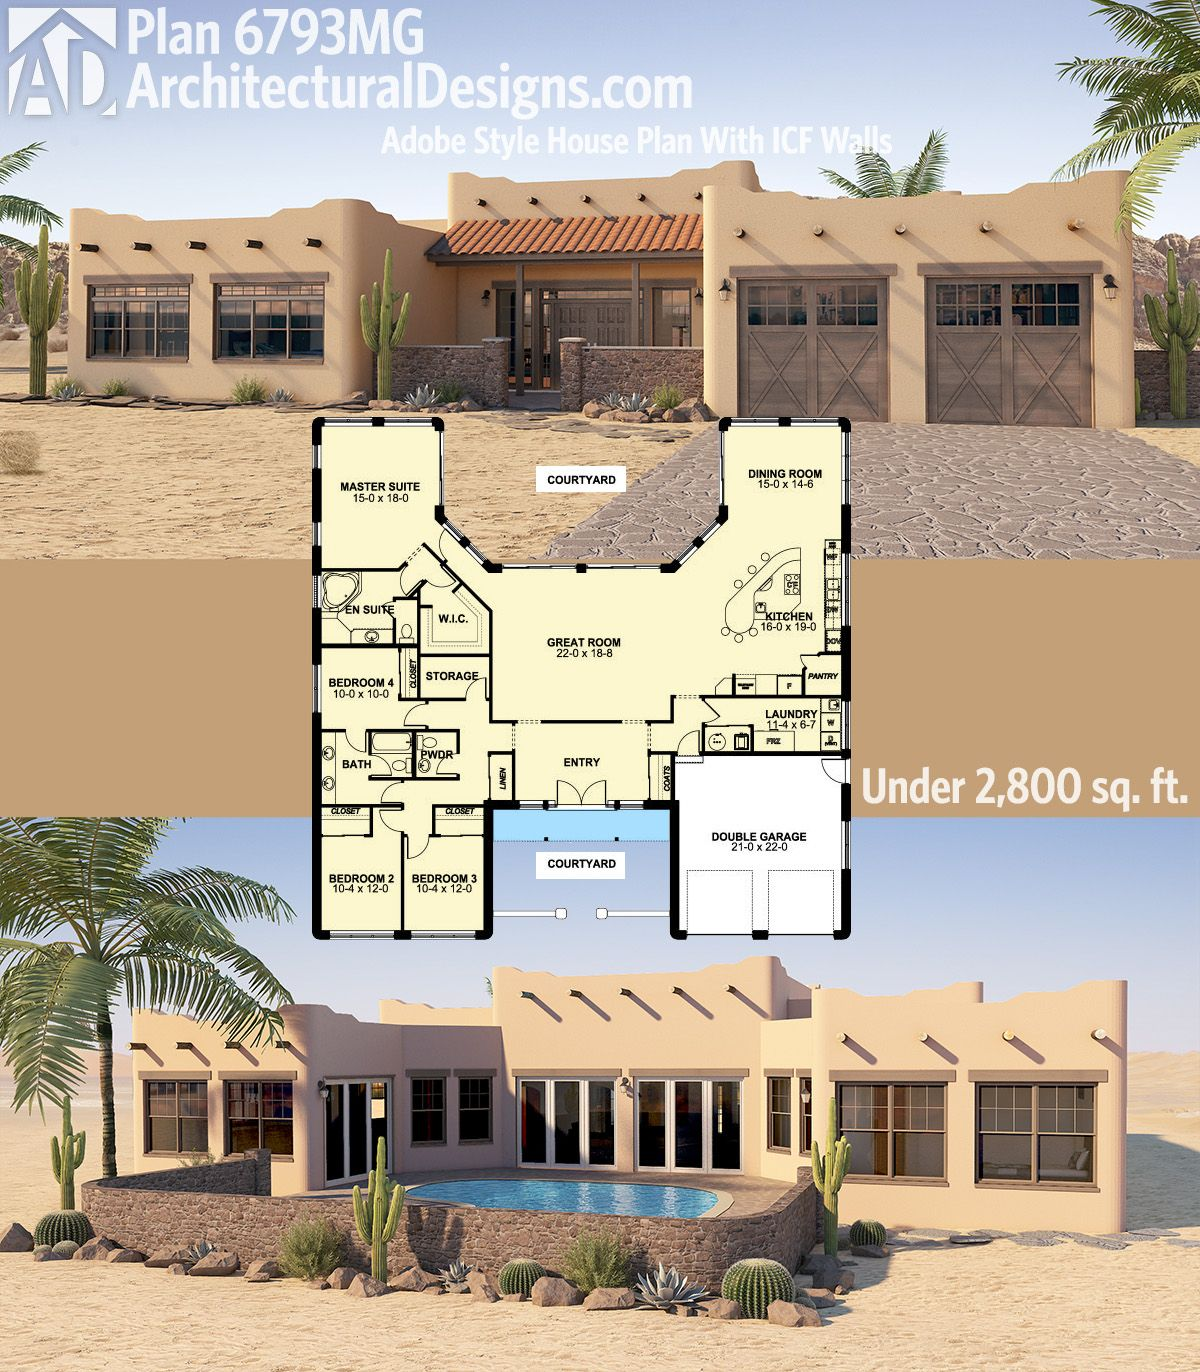 Icf house plans florida house plans for Icf house plans